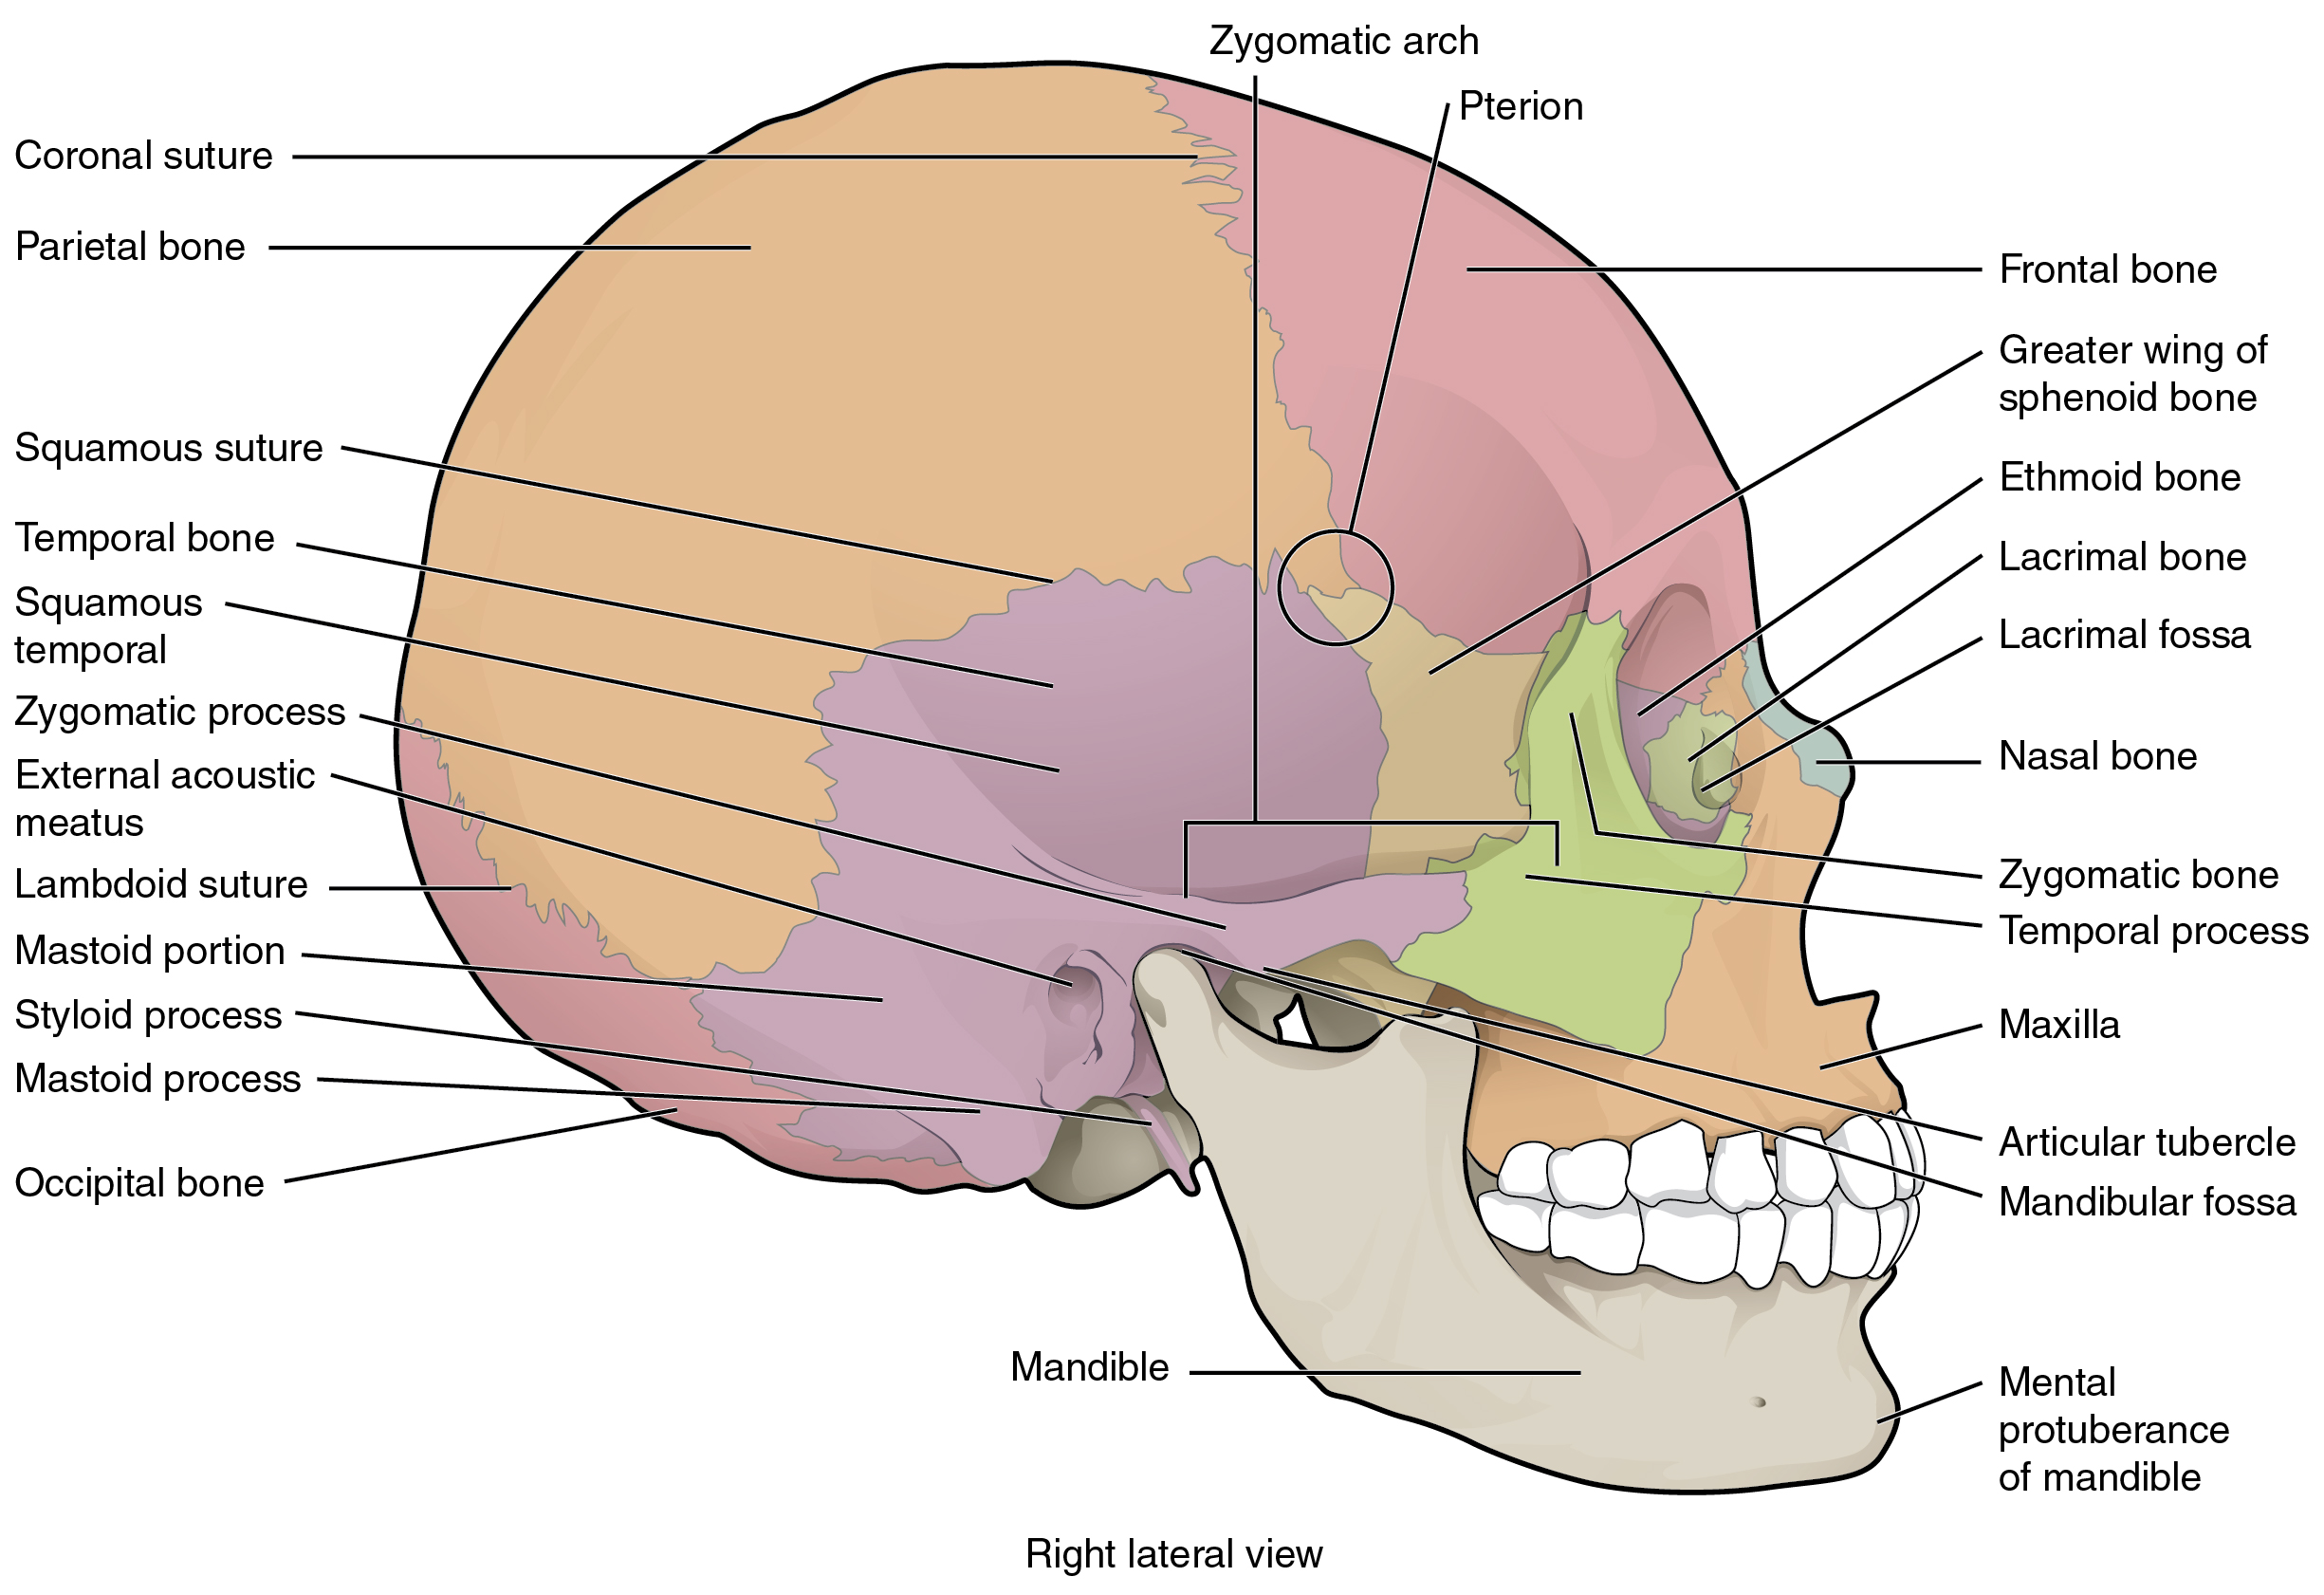 This Image Shows The Lateral View Of The Human Skull And